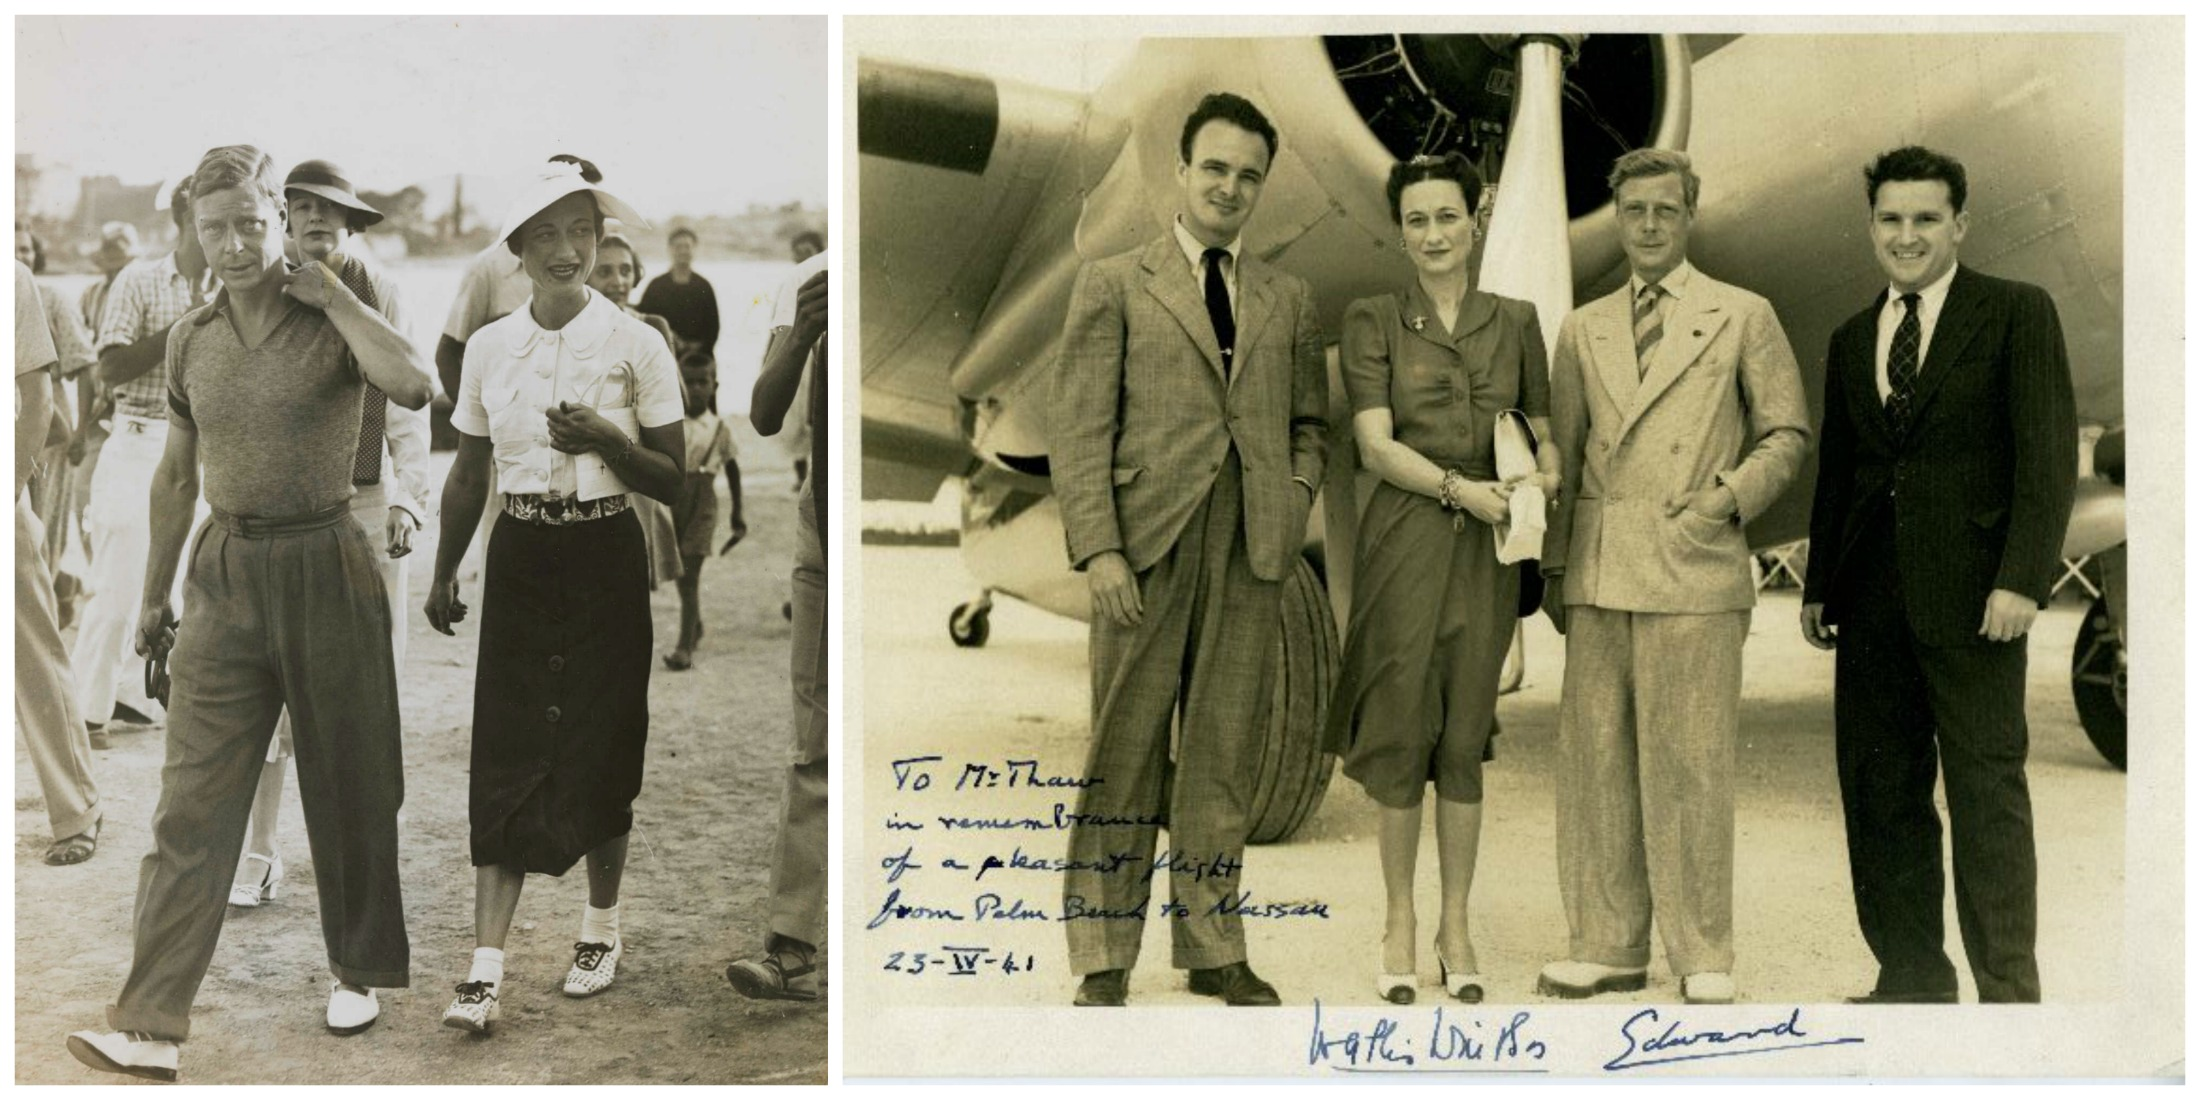 Po lewej Edward VIII i Wallis Simpson na wakacjach w Jugosławii w sierpniu 1936 r. Po prawej para w towarzystwie przyjaciół w 1941 r. (fot. National Media Museum @ Flickr Commons / SDASM Archives / Flickr.com)